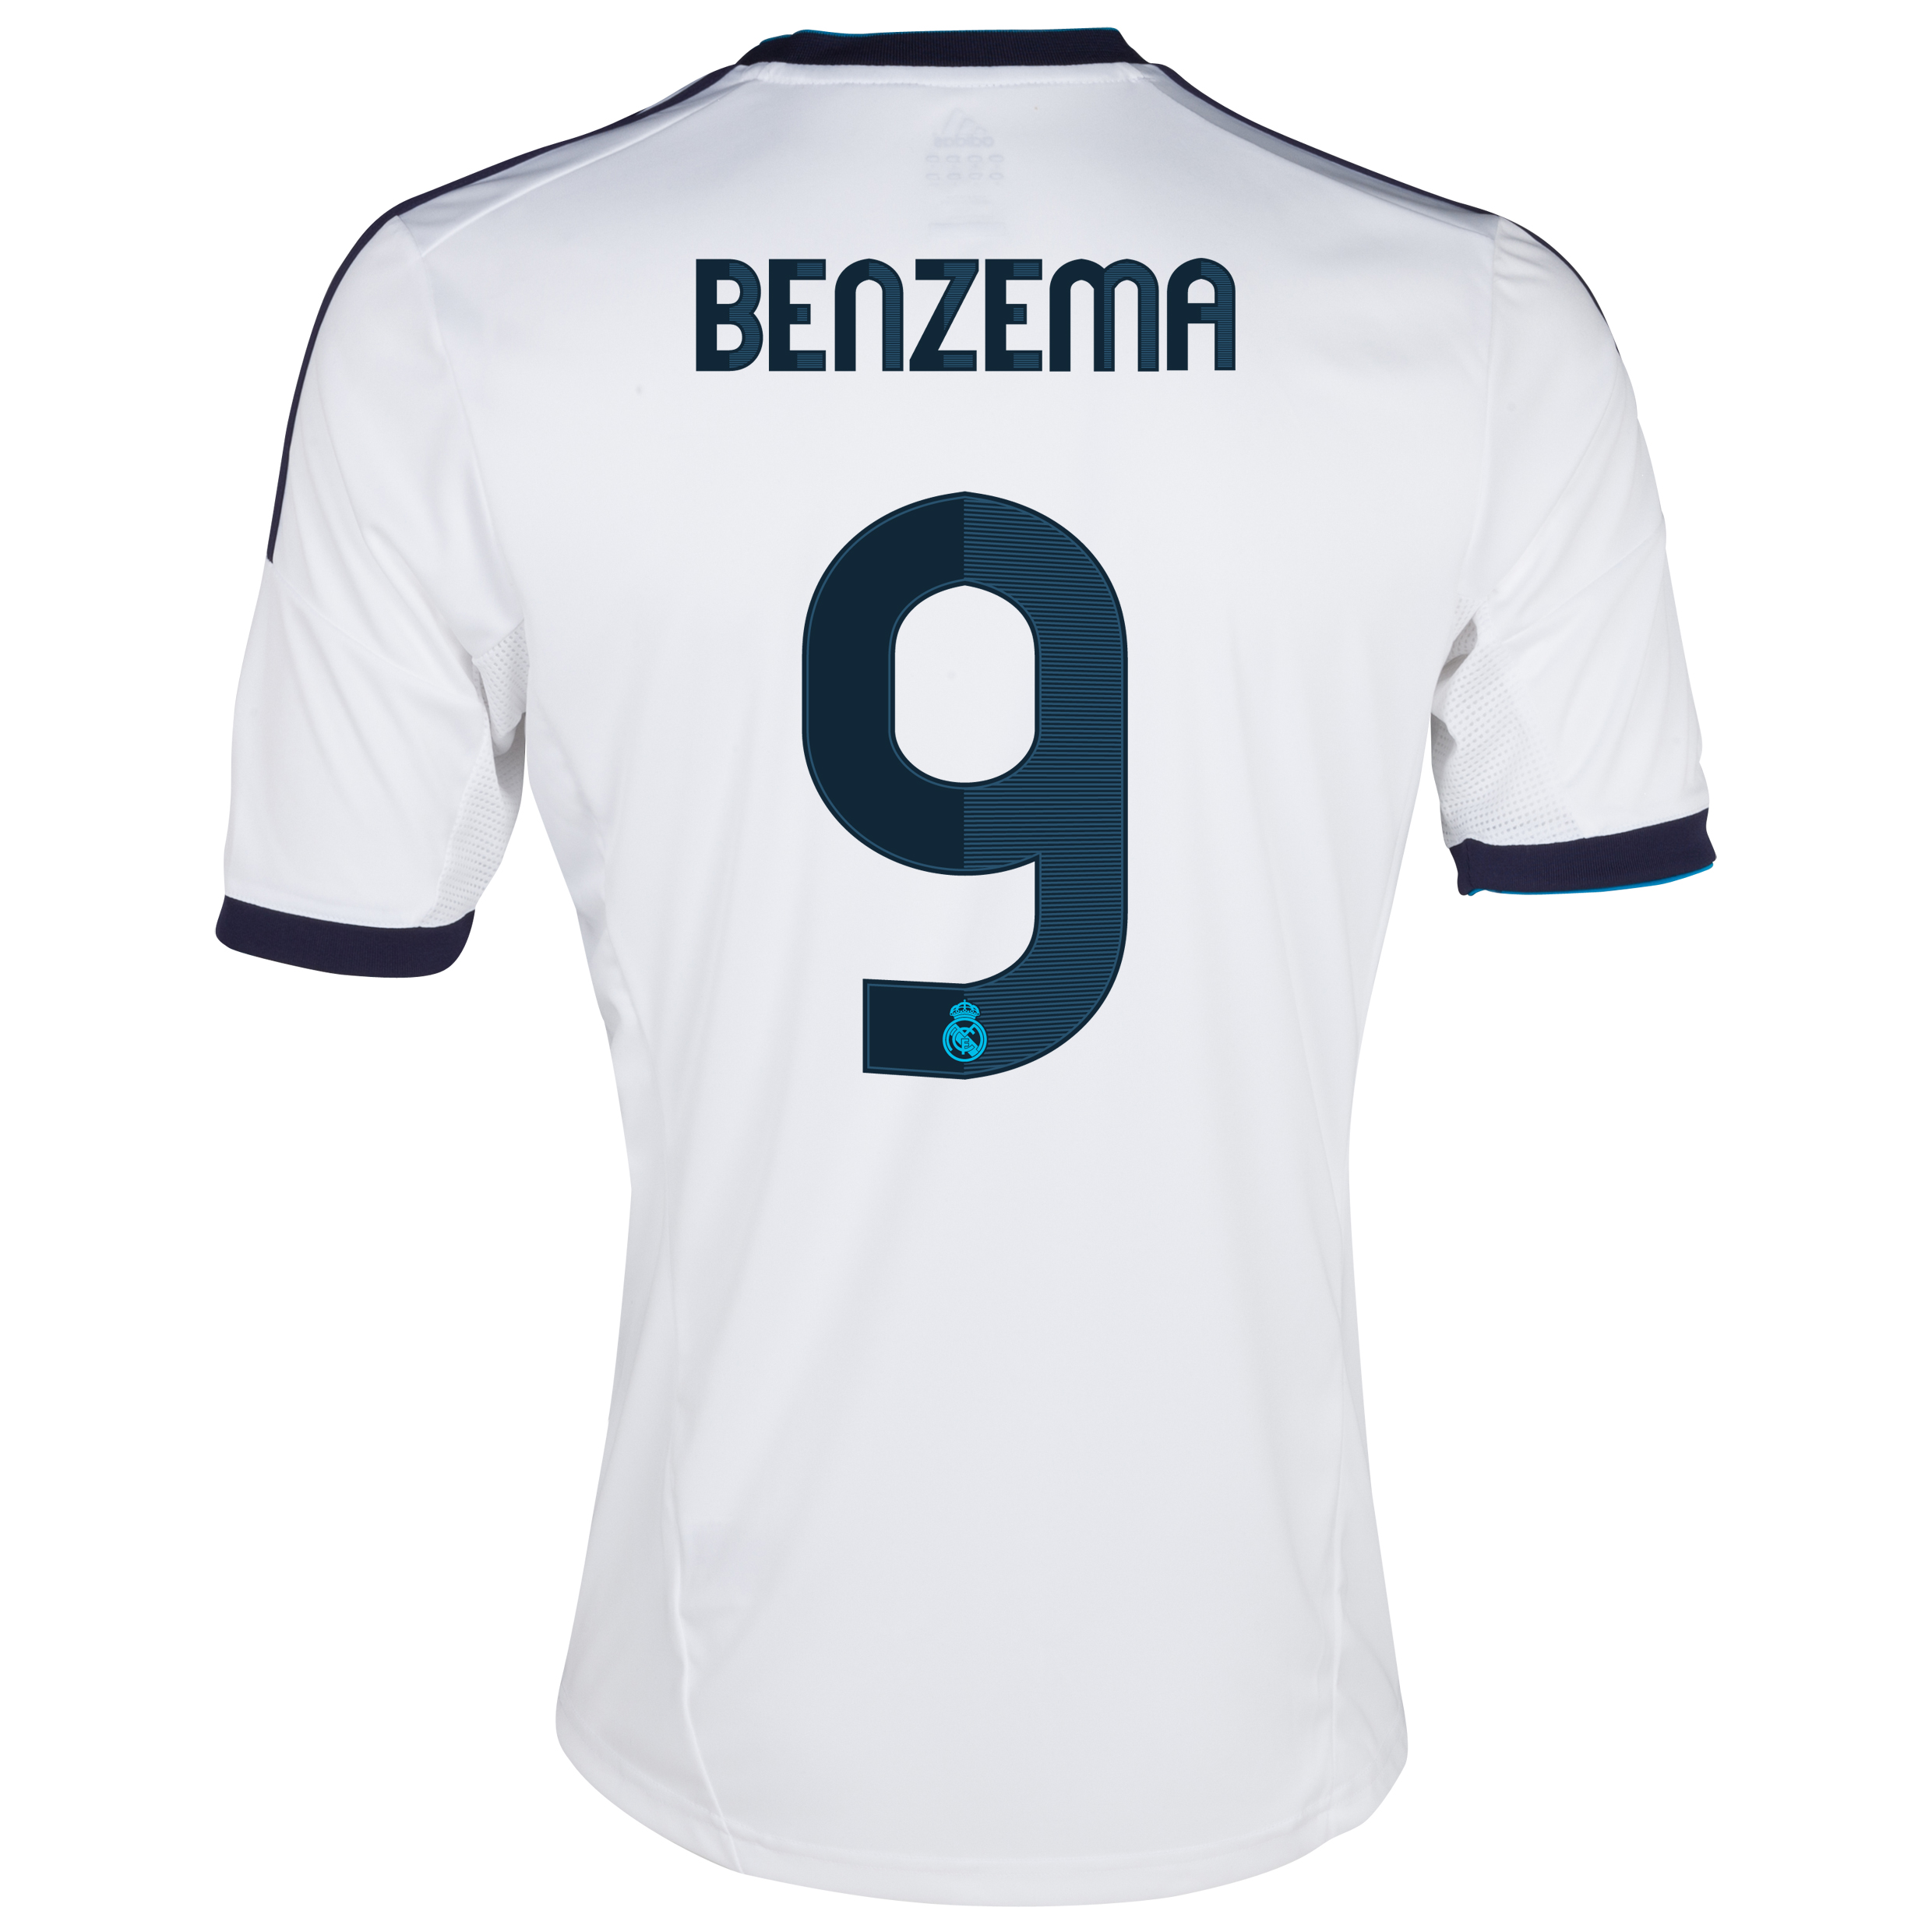 Real Madrid Home Shirt 2012/13 - Youths with Benzema 9 printing